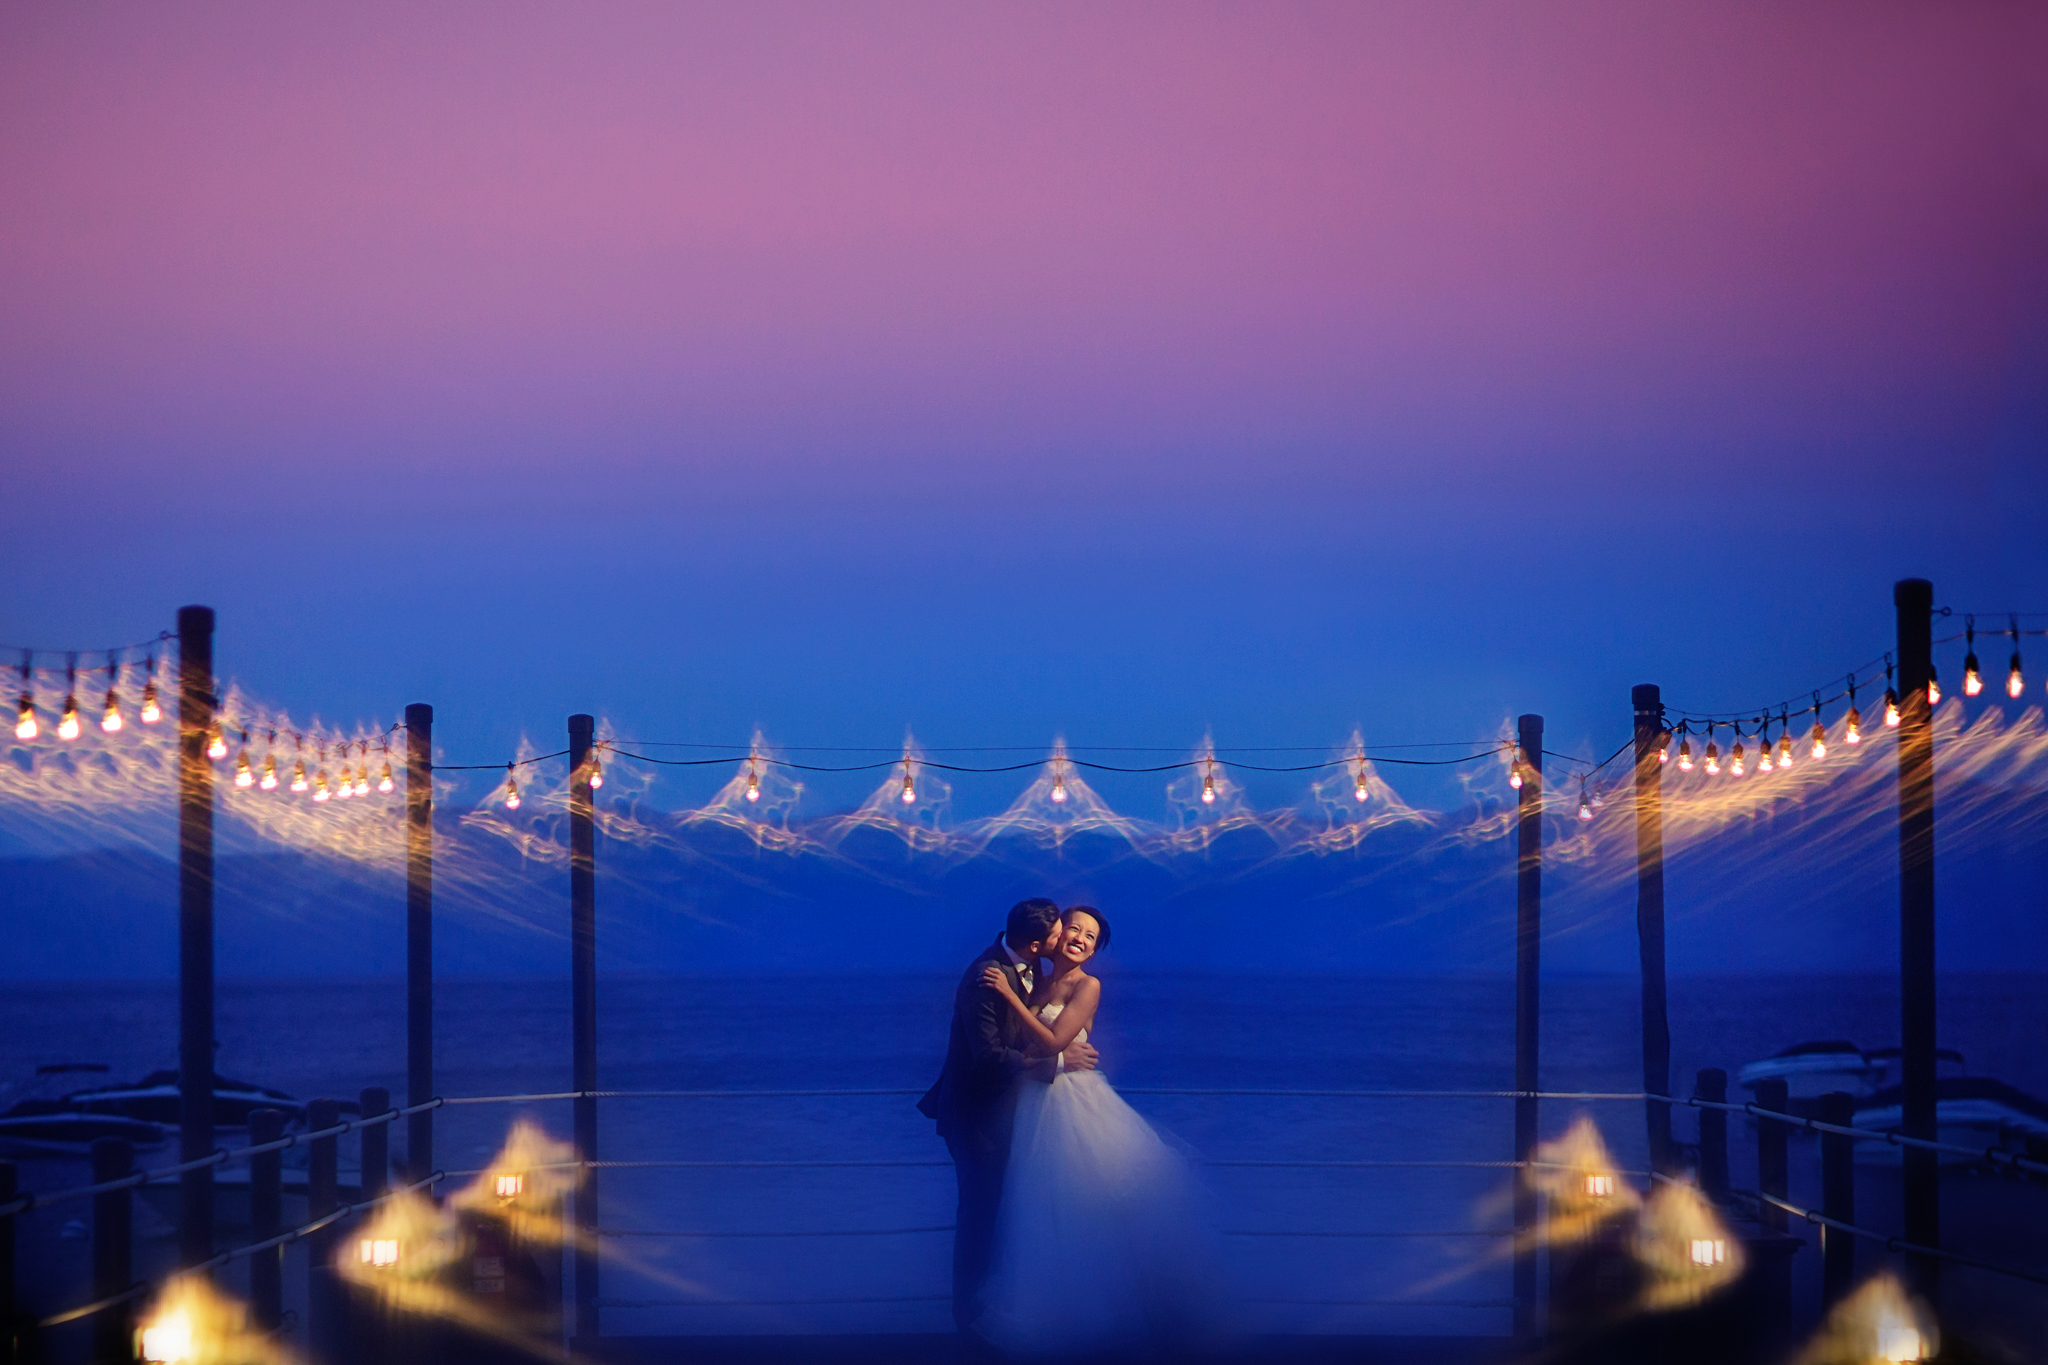 fun bride and groom portrait with motion blur- photo by Chrisman Studios